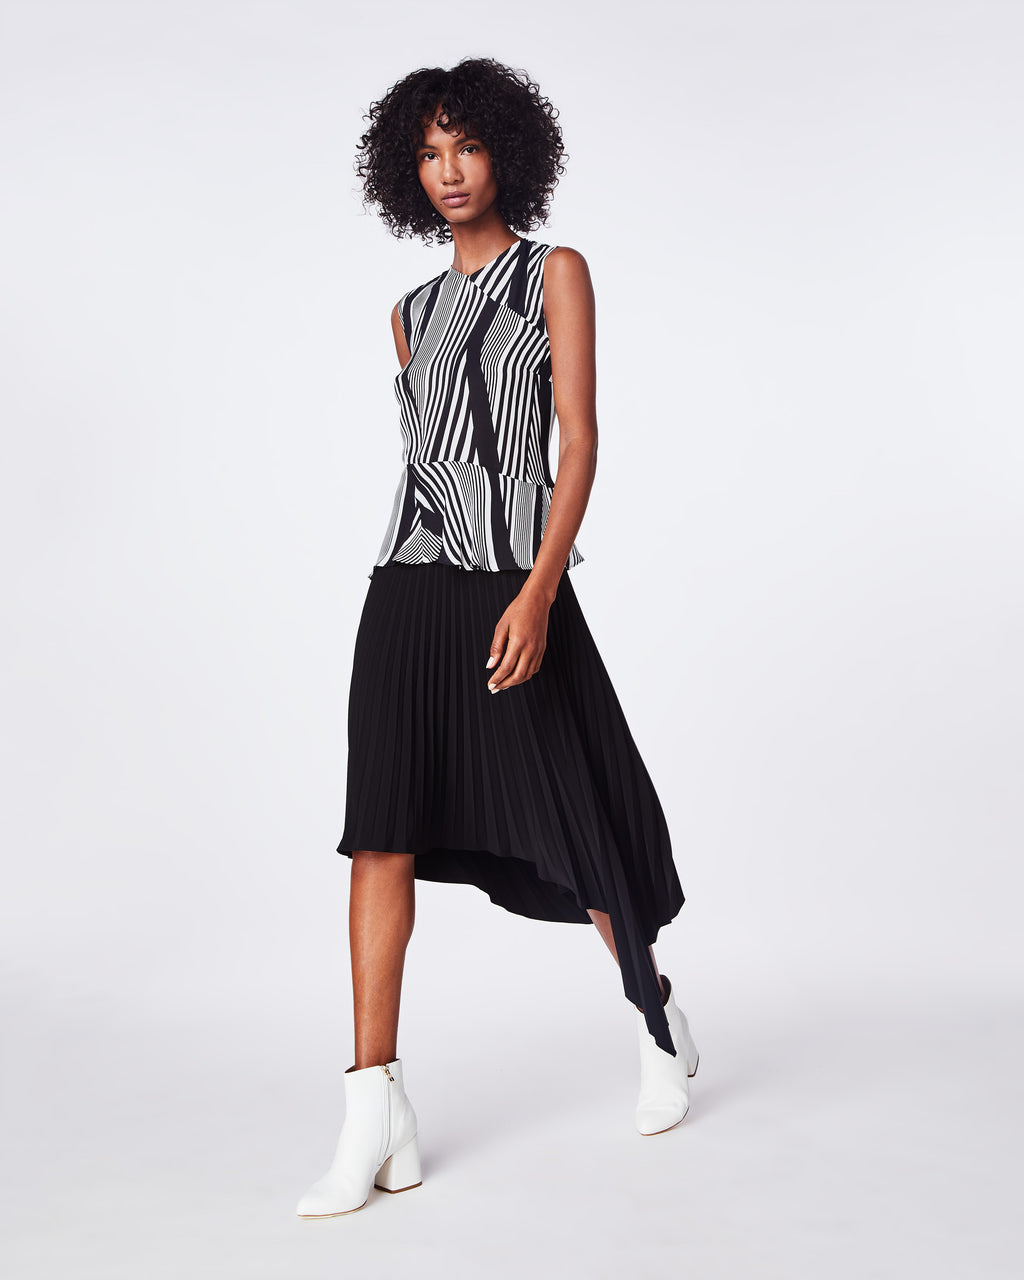 BE10363 - WAVY STRIPE ASYMMETRICAL TOP - tops - blouses - THIS HIGHNECK, SLEEVELESS TOP DRAPES BEAUTIFULLY. THE SHEER PRINTED FABRIC PAIRS WELL WITH YOUR FAVORITE JEANS OR A MINI SKIRT.